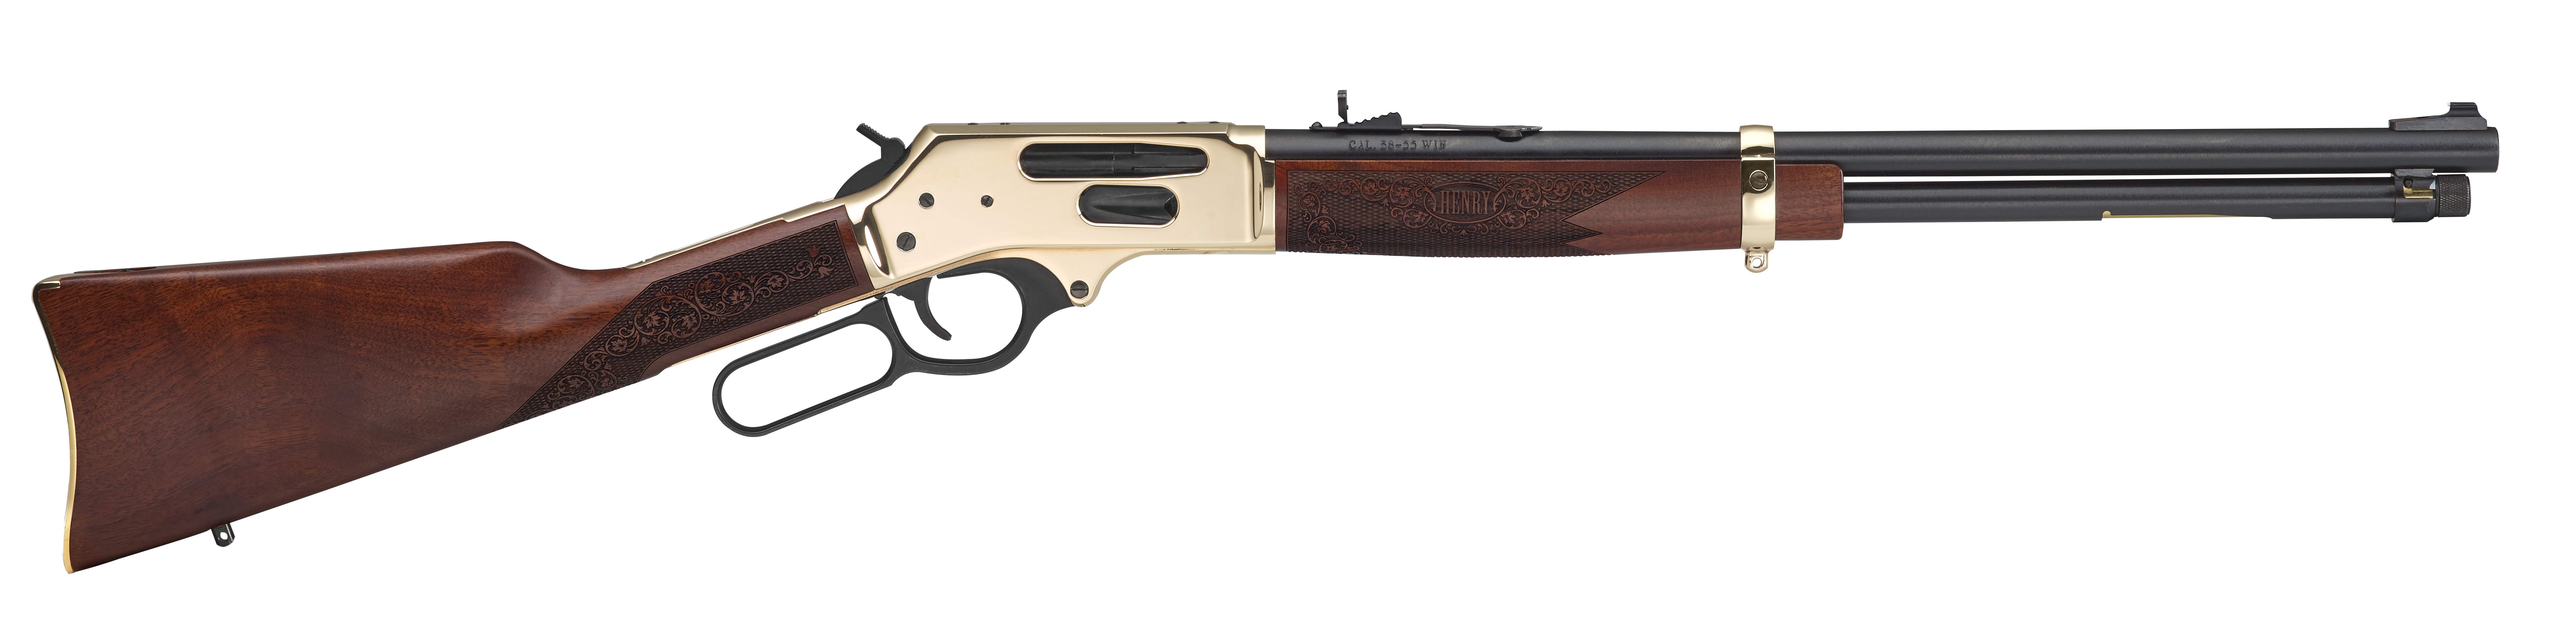 Henry Repeating Arms SIDE GATE LEVER ACTION 35 REM